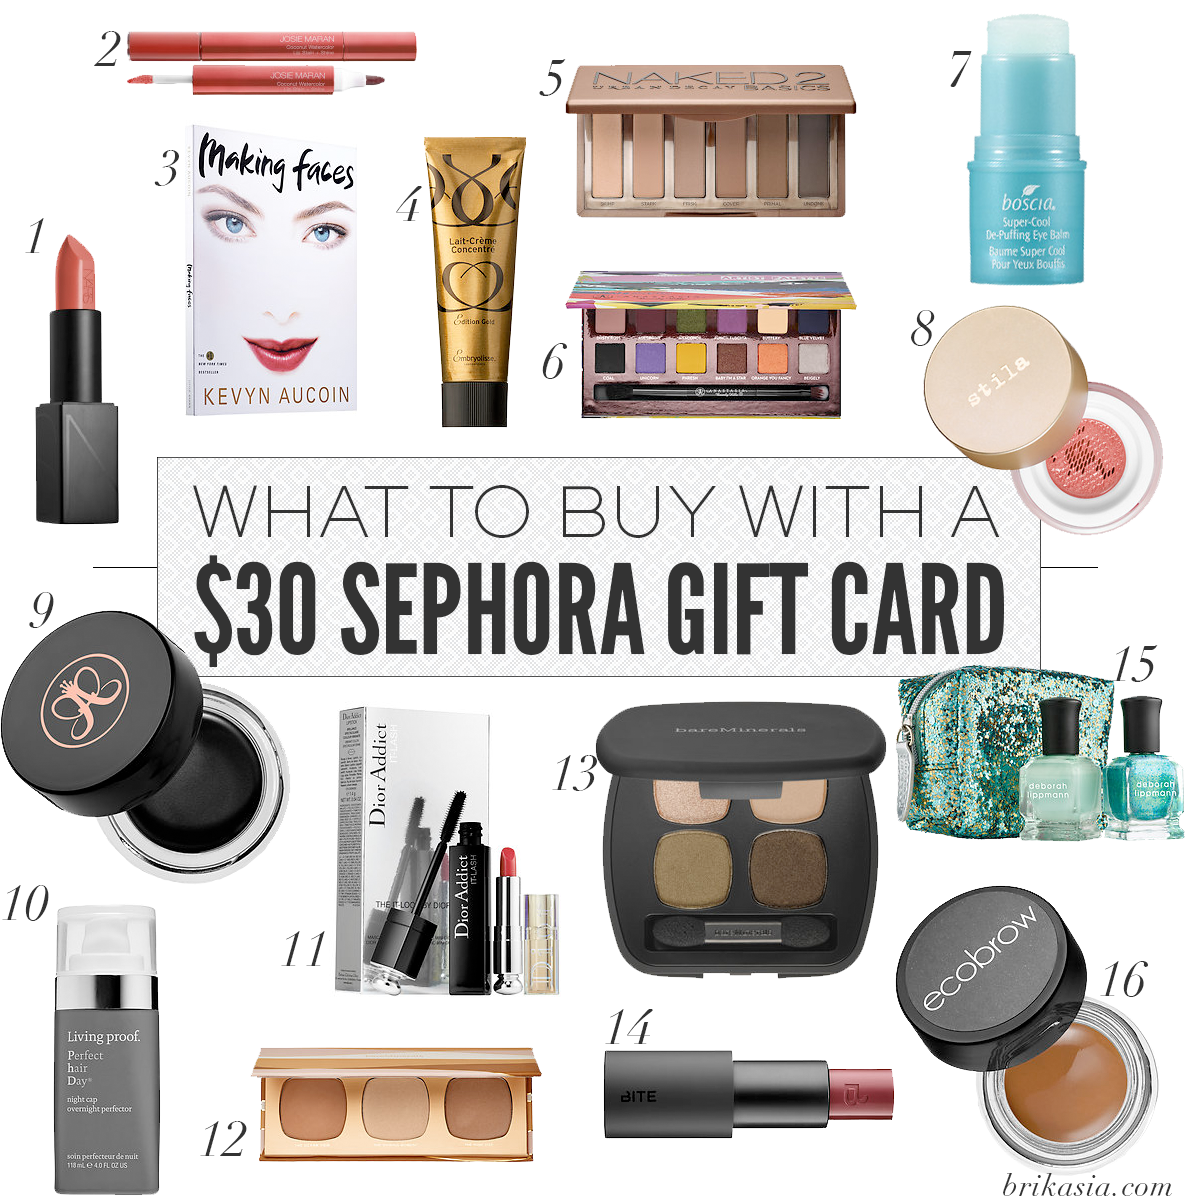 Sephora Gift Card Giveaway, beauty giveaway, free sephora gift card, $30 sephora gift card giveaway